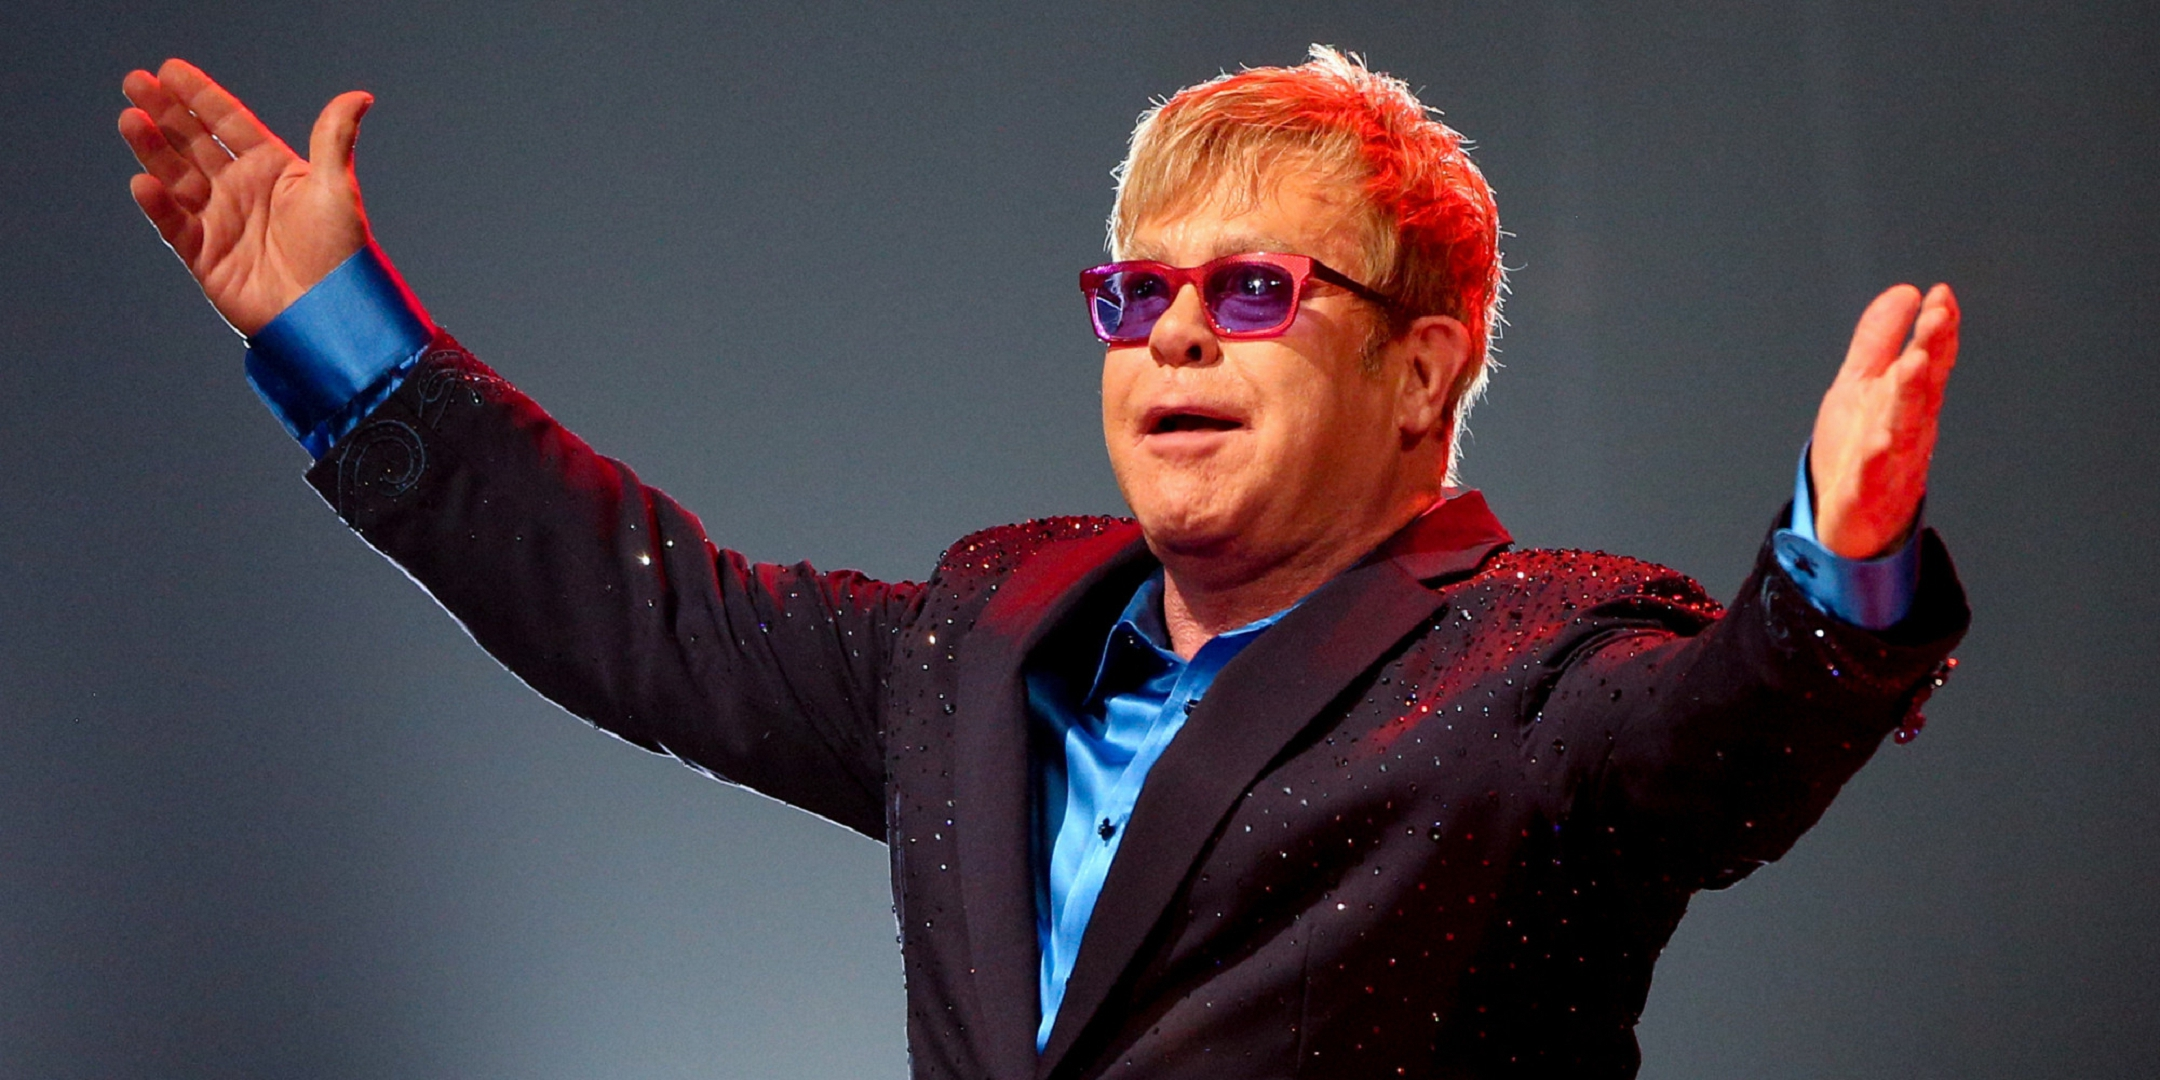 elton john Elton john lyrics - 429 song lyrics sorted by album, including your song, can you feel the love tonight, bennie and the jets.